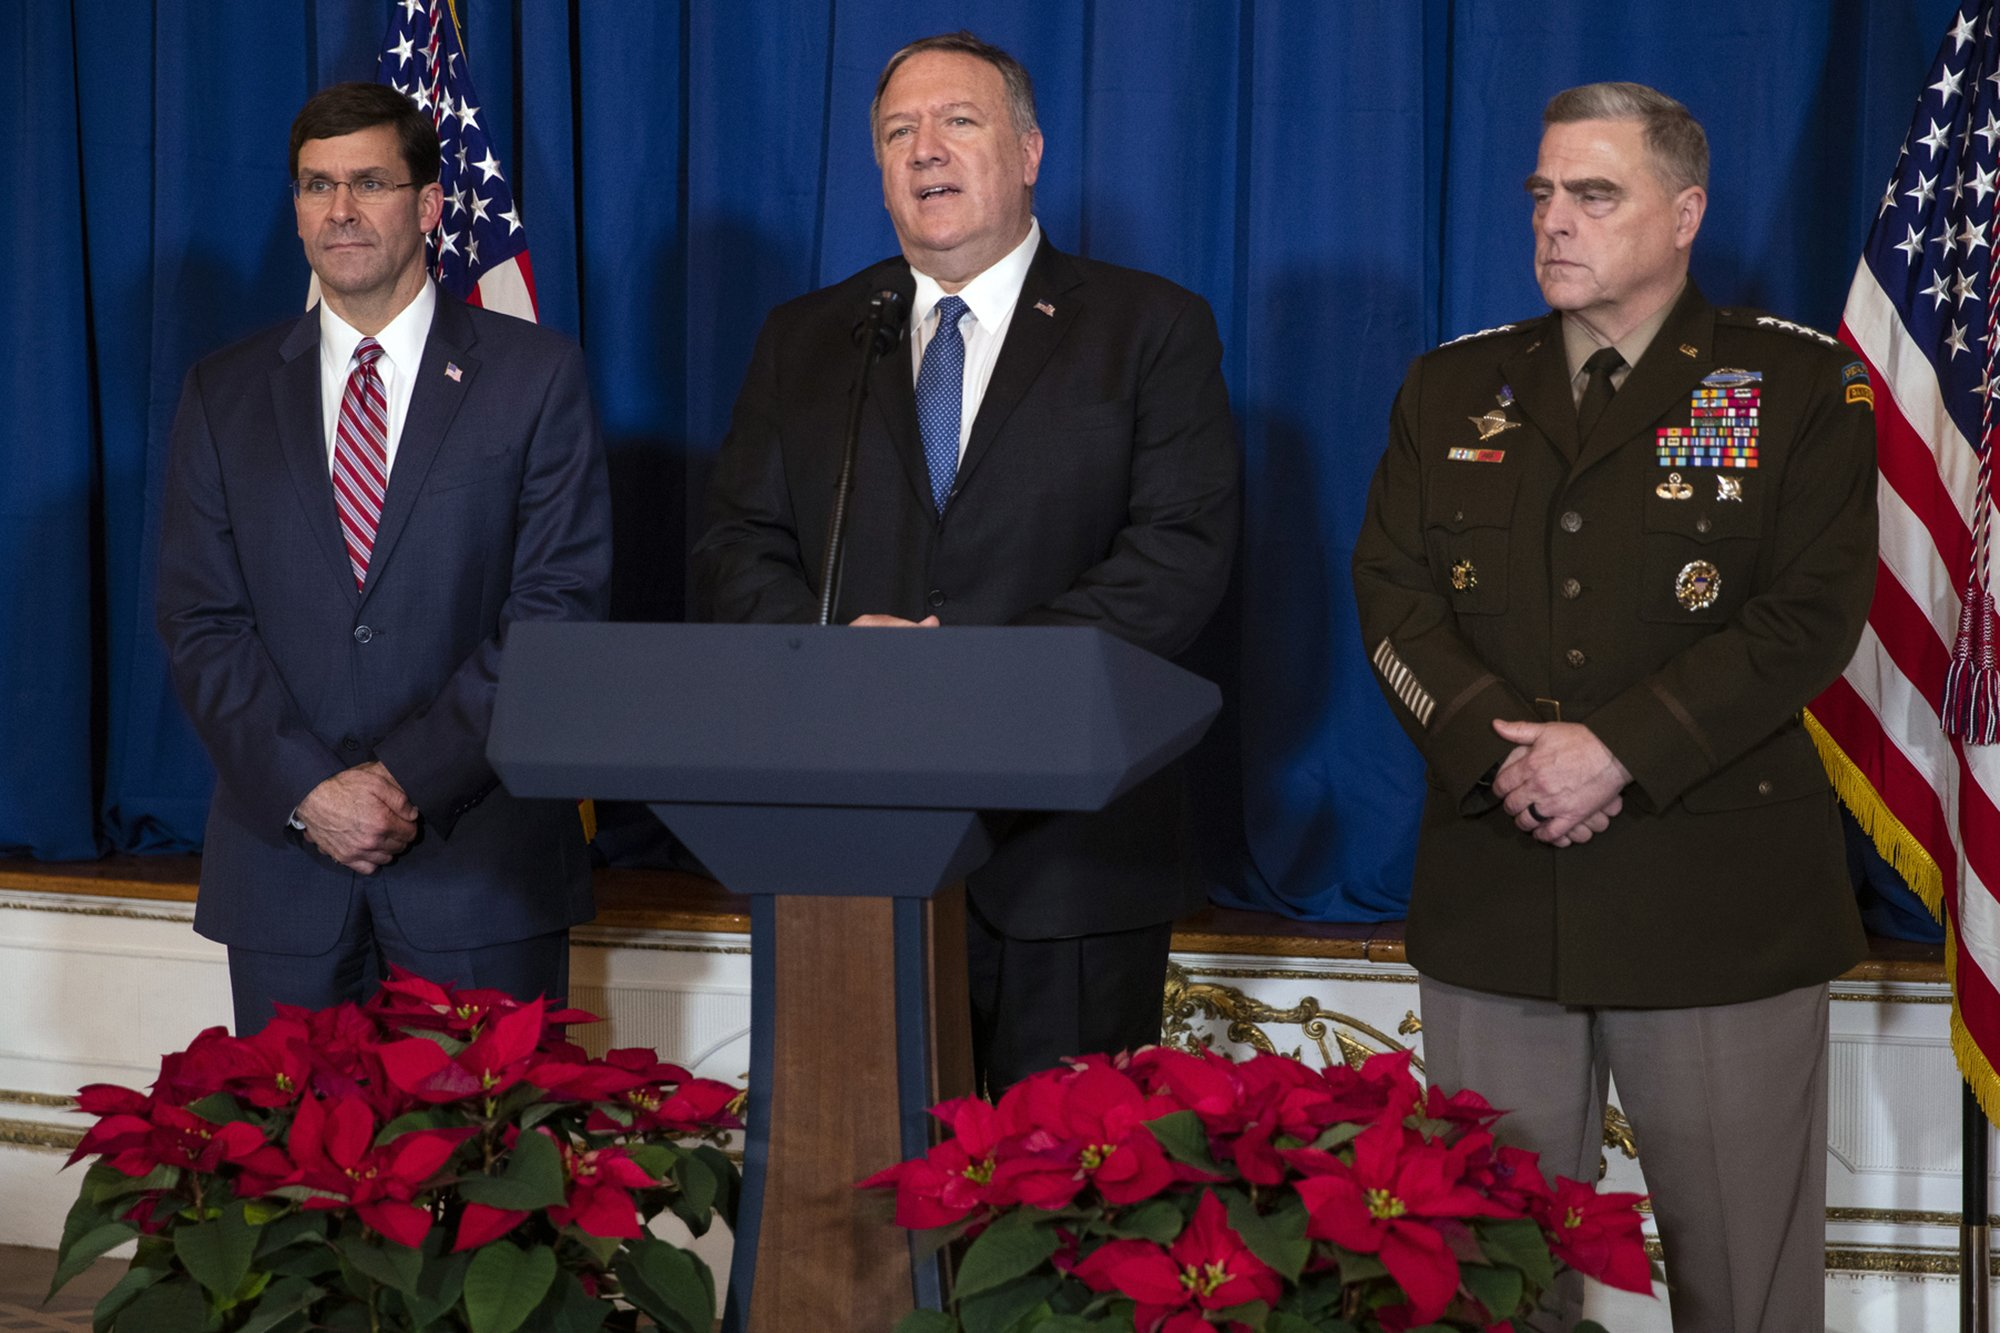 Pompeo and Milley